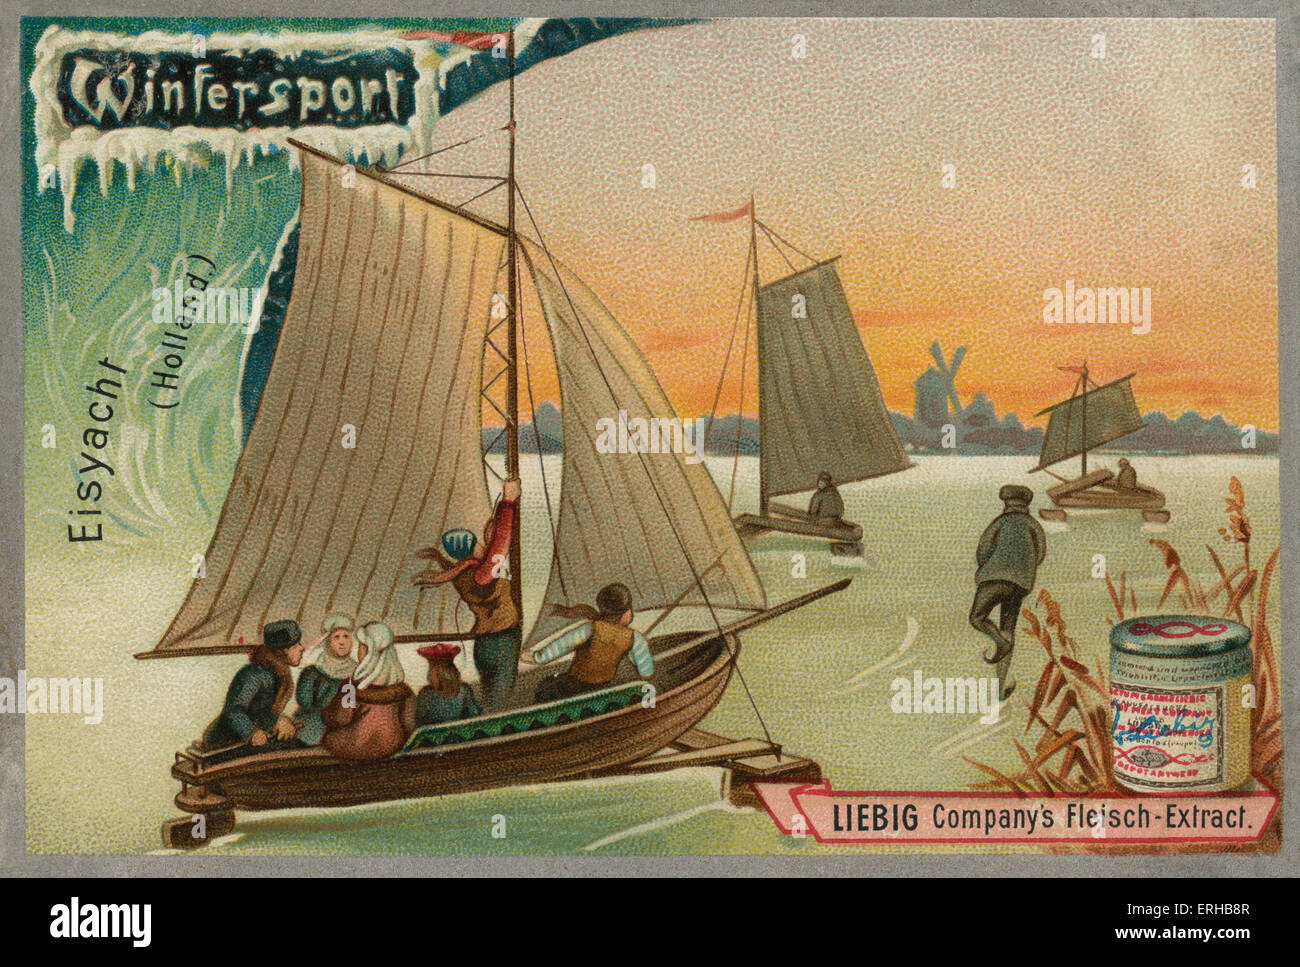 Ice yachting / eis yacht, Holland. Liebig card, Winter Sports, 1896. - Stock Image